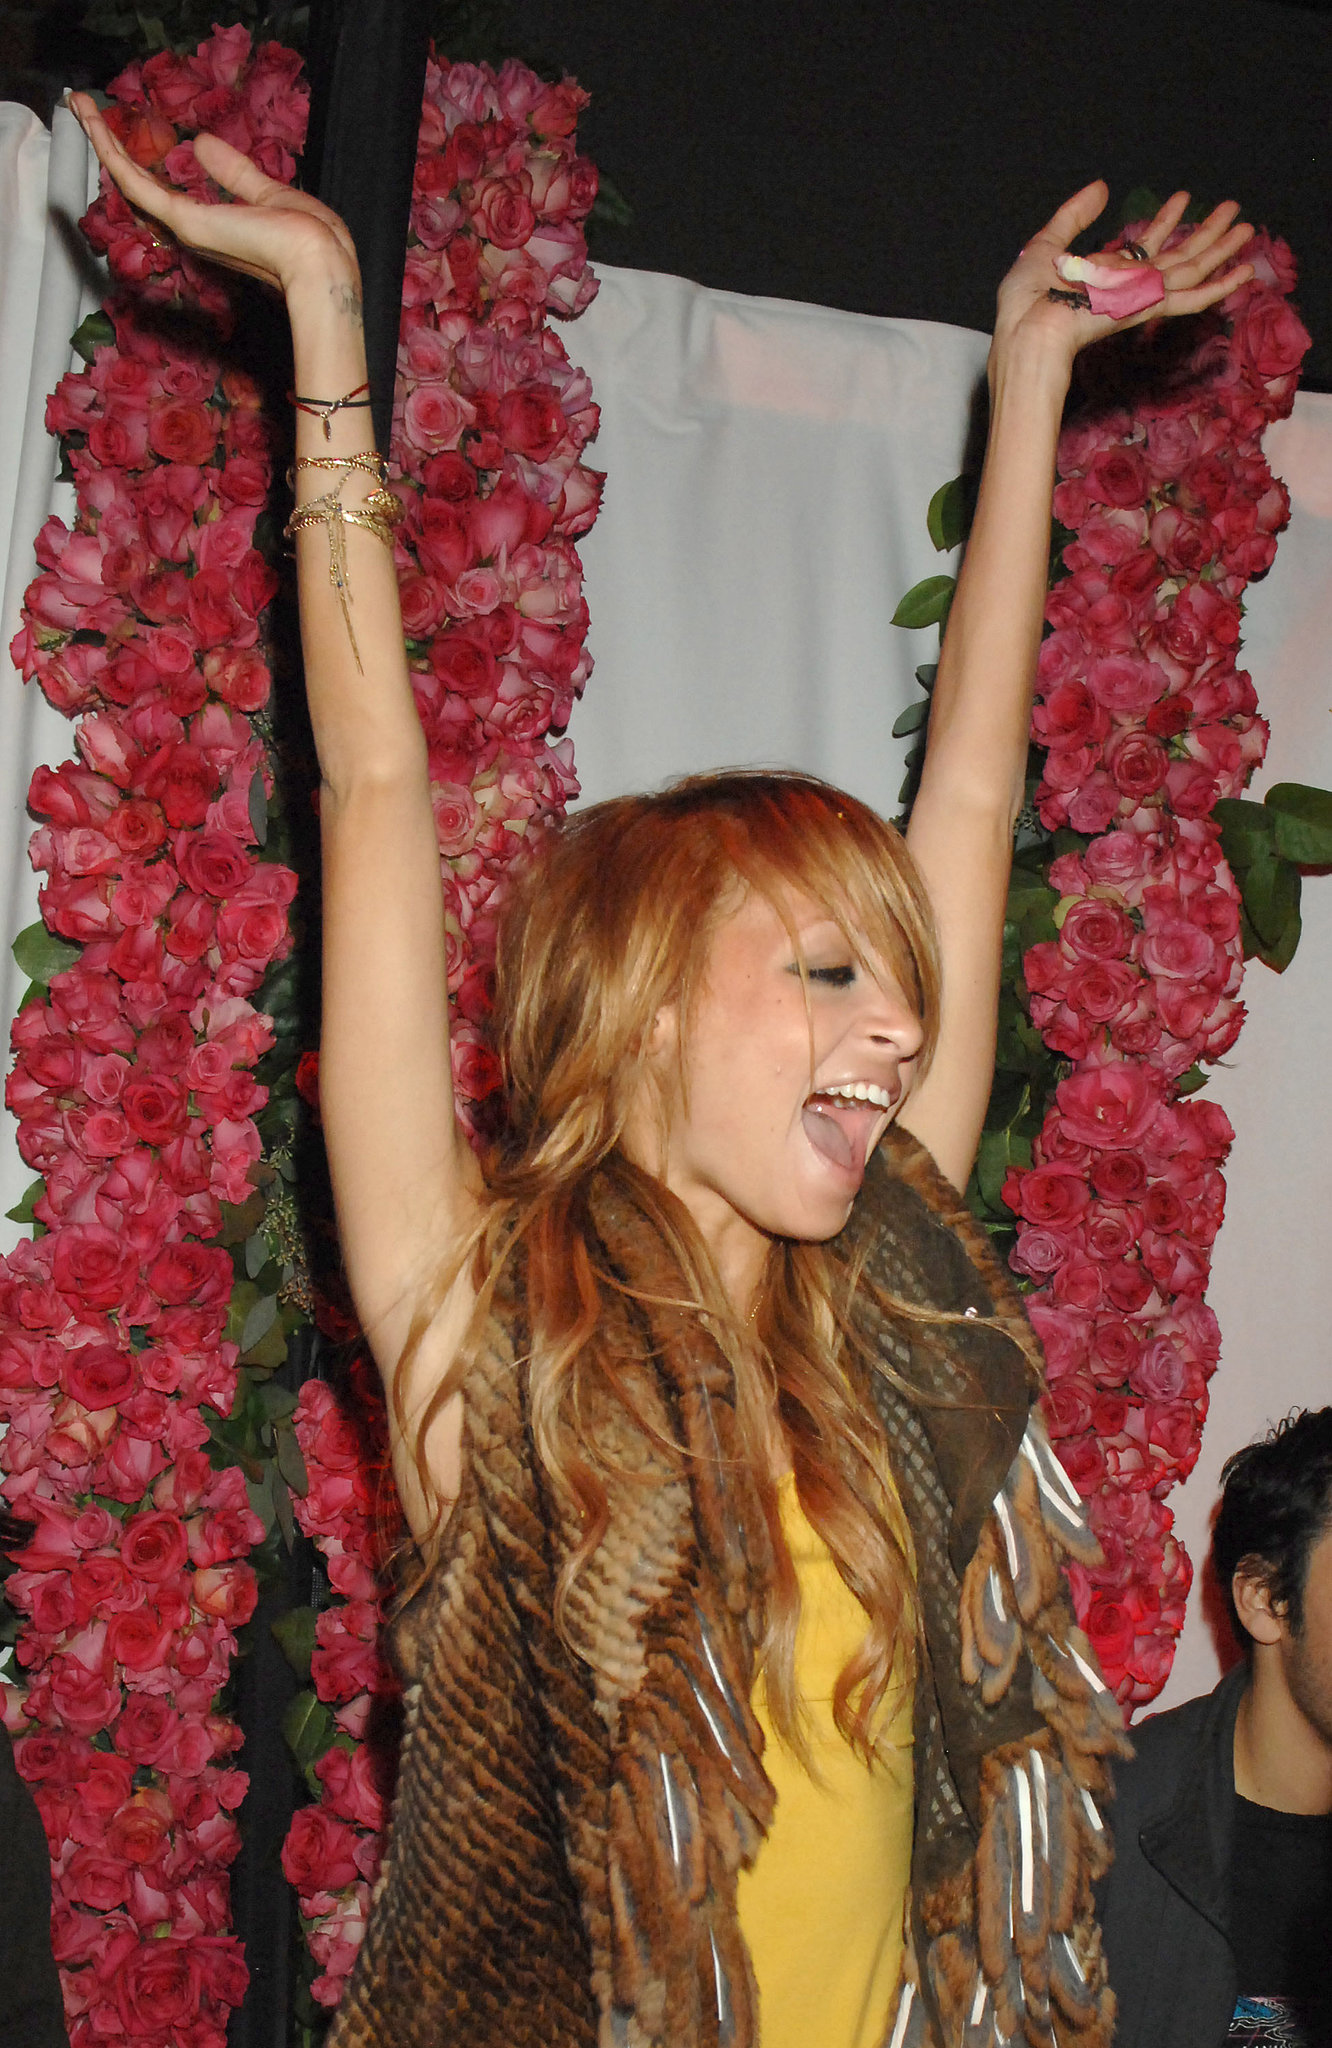 Nicole Richie was the belle of the ball at a launch party for the T-Mobile Sidekick in October 2006 (yes, we said T-Mobile Sidekick).